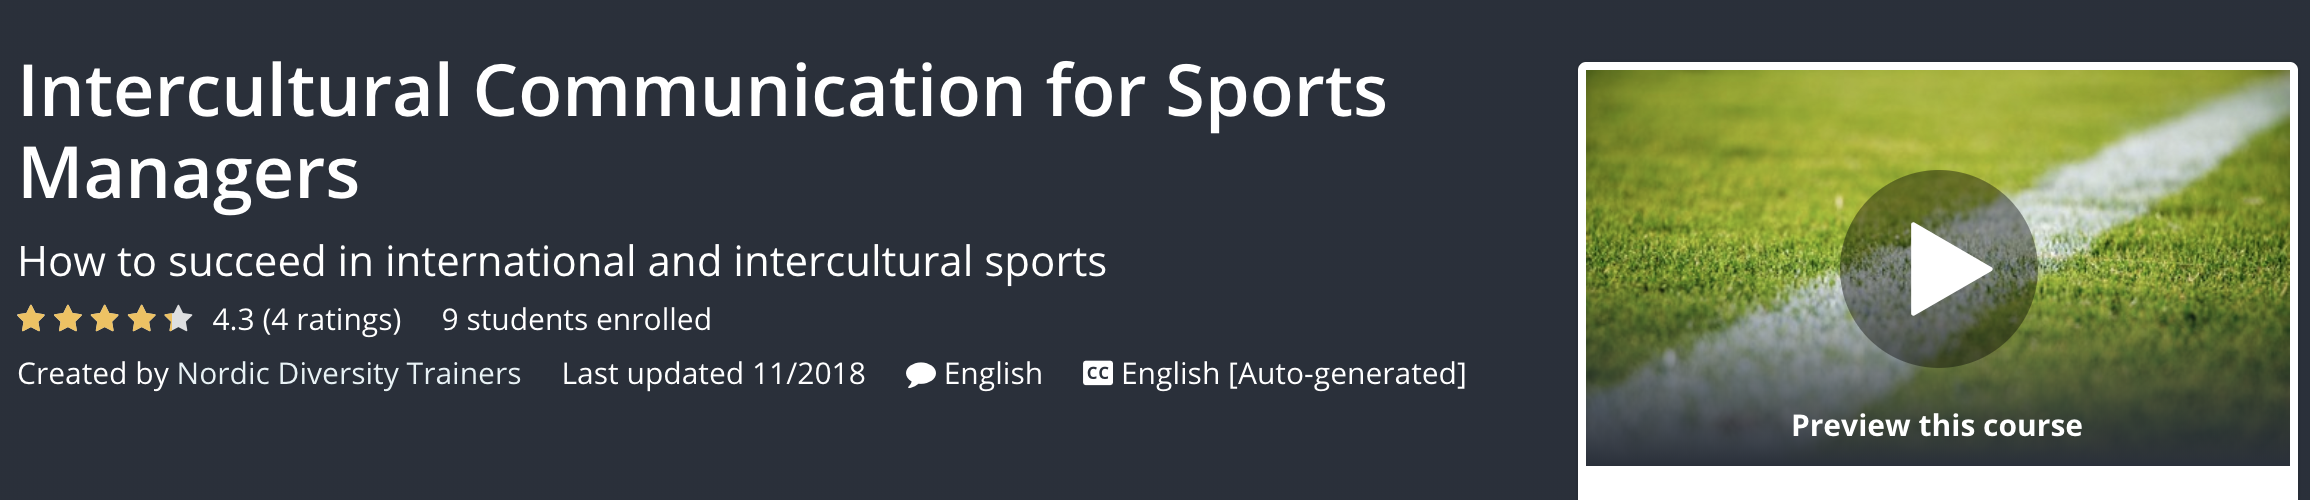 Intercultural Communication for Sports Managers